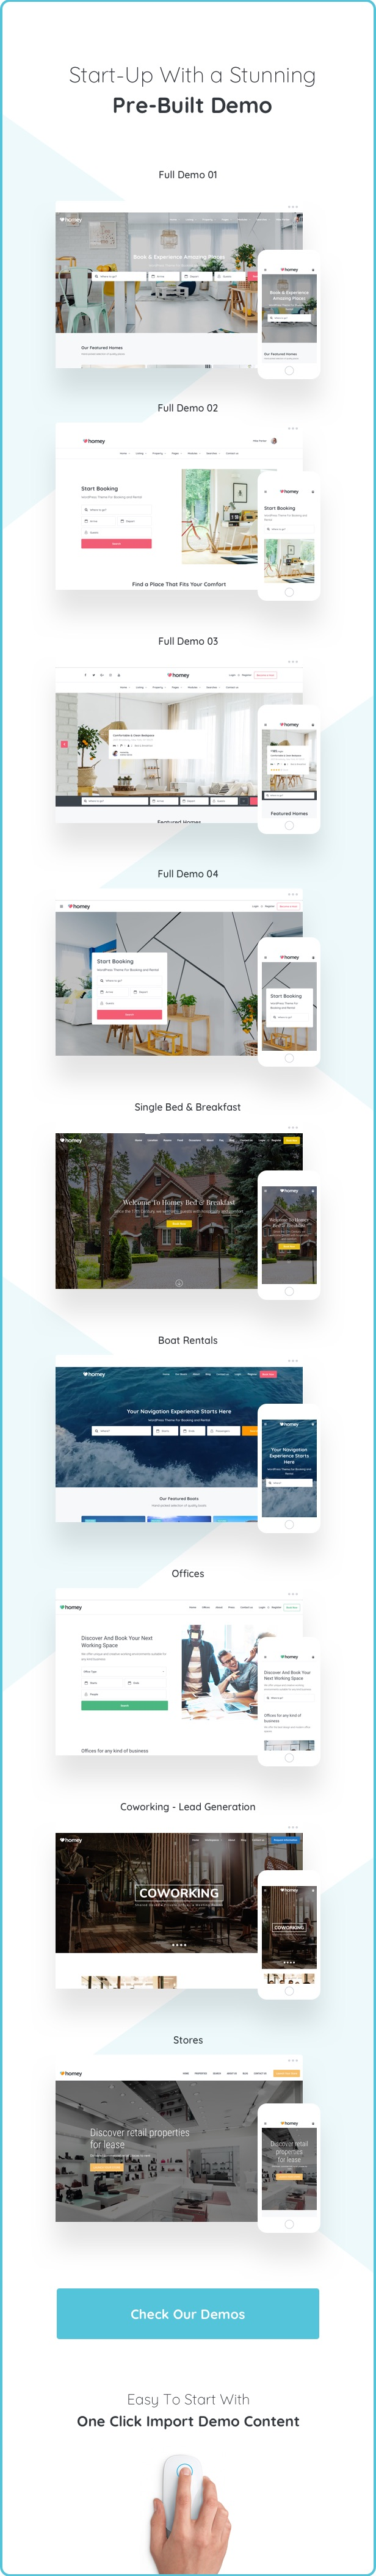 1614480426 187 demos - Homey - Booking and Rentals WordPress Theme